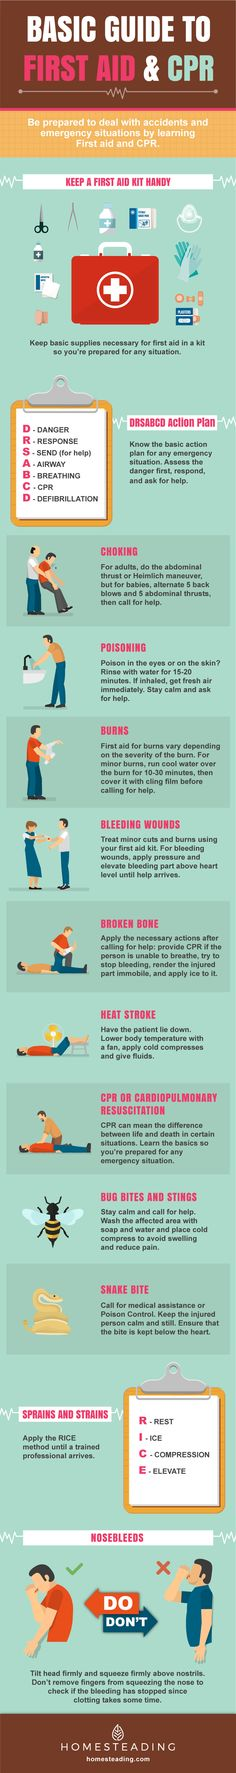 Even if you know much about first aid, it's still best to avoid these kinds of situations when you can. Prevention is always better than cure, but in case you do get into an emergency situation, regardless of what you've learned it will not matter if you panic. Always stay calm, have a level head and put what you've learned about first aid and CPR into action!.